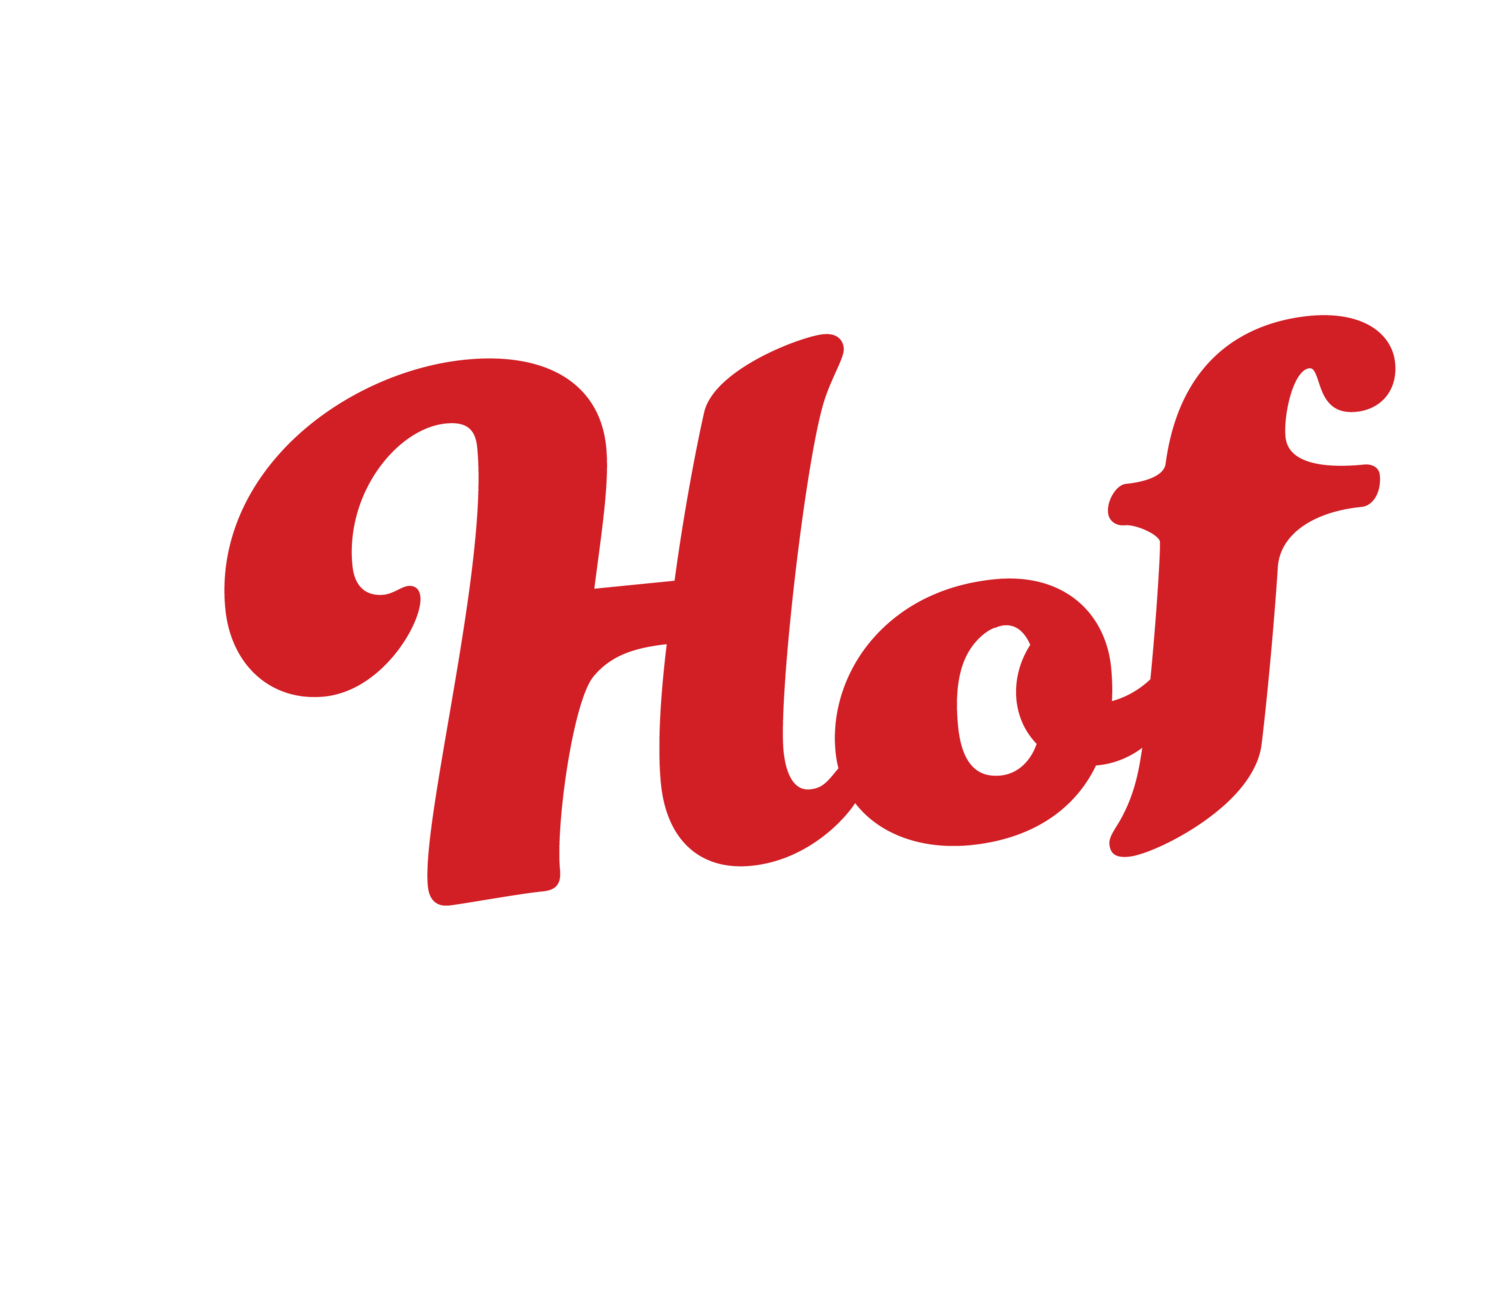 The HofGarden